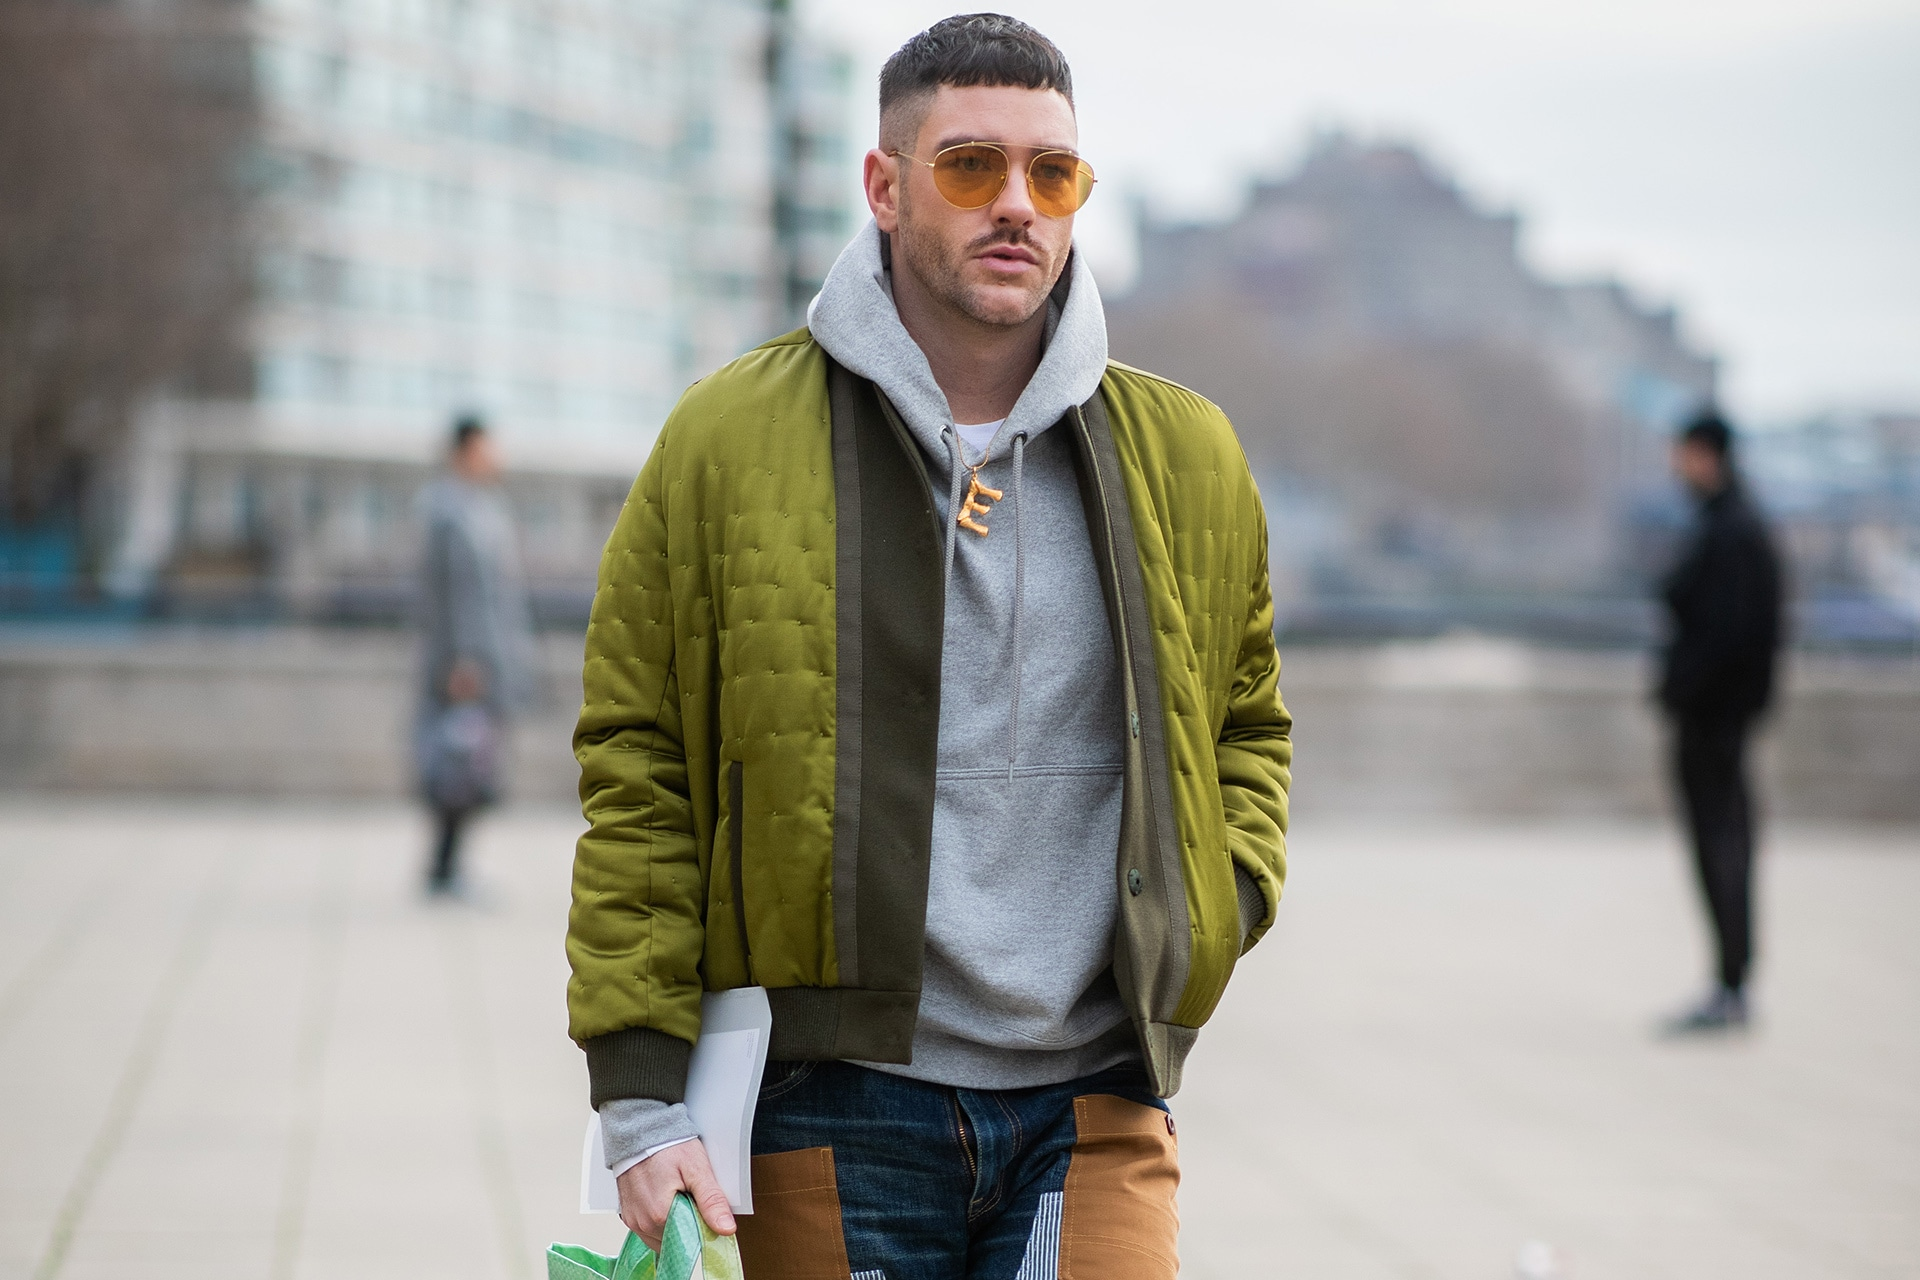 Bomber Jackets Aren T Going Anywhere Here S 6 Ways To Wear Them In 2019 Gq